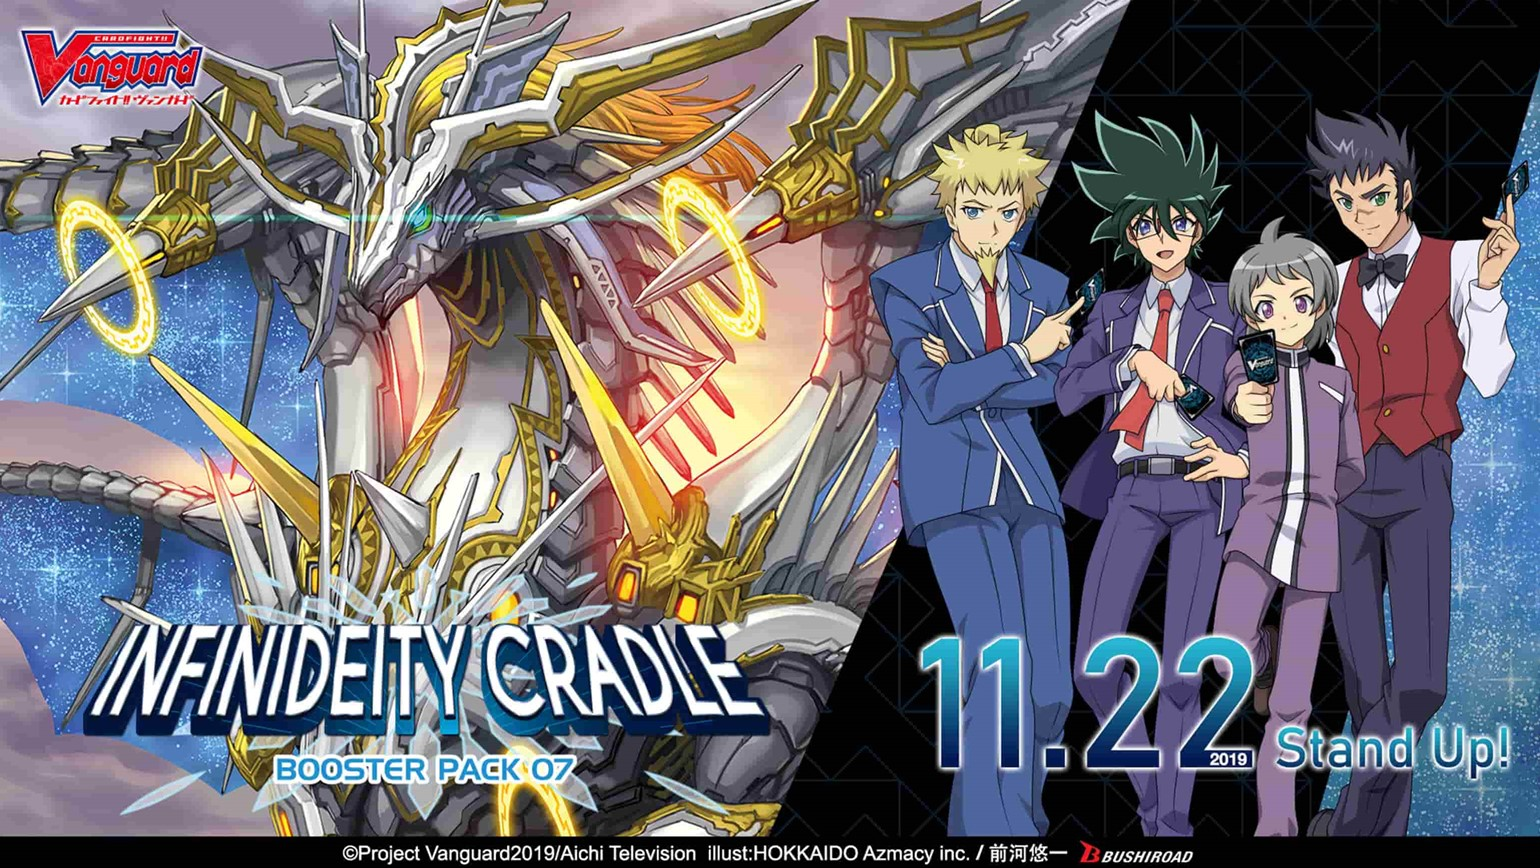 English Edition Cardfight!! Vanguard Booster Pack Vol. 07: Infinideity Cradle Coming November 22nd